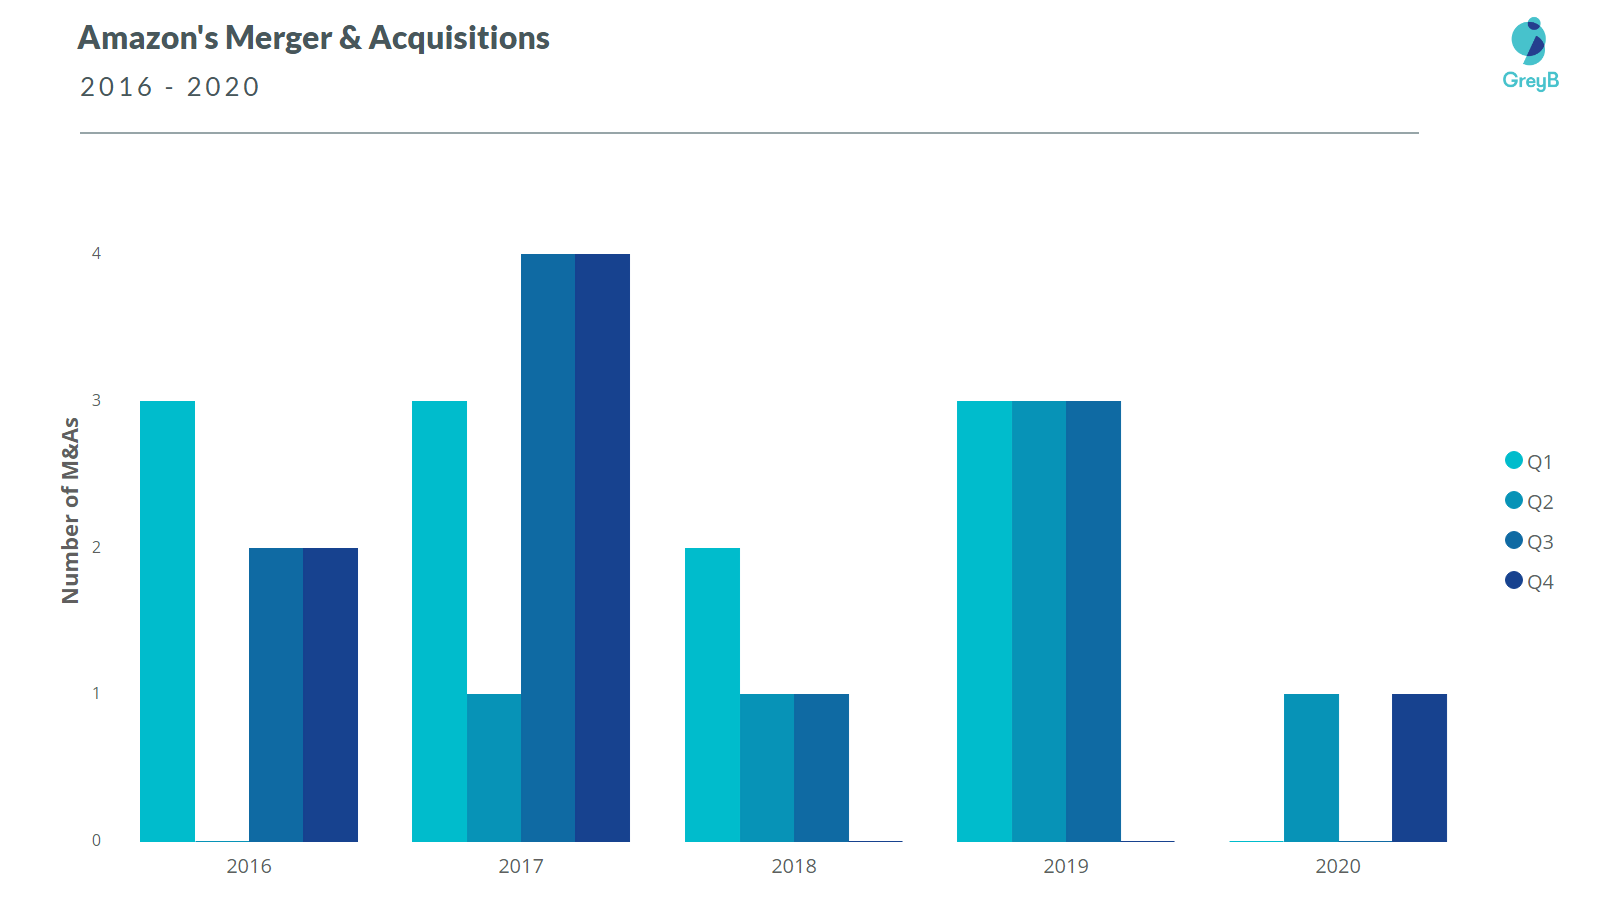 Amazon Merger and Acquisition 2020